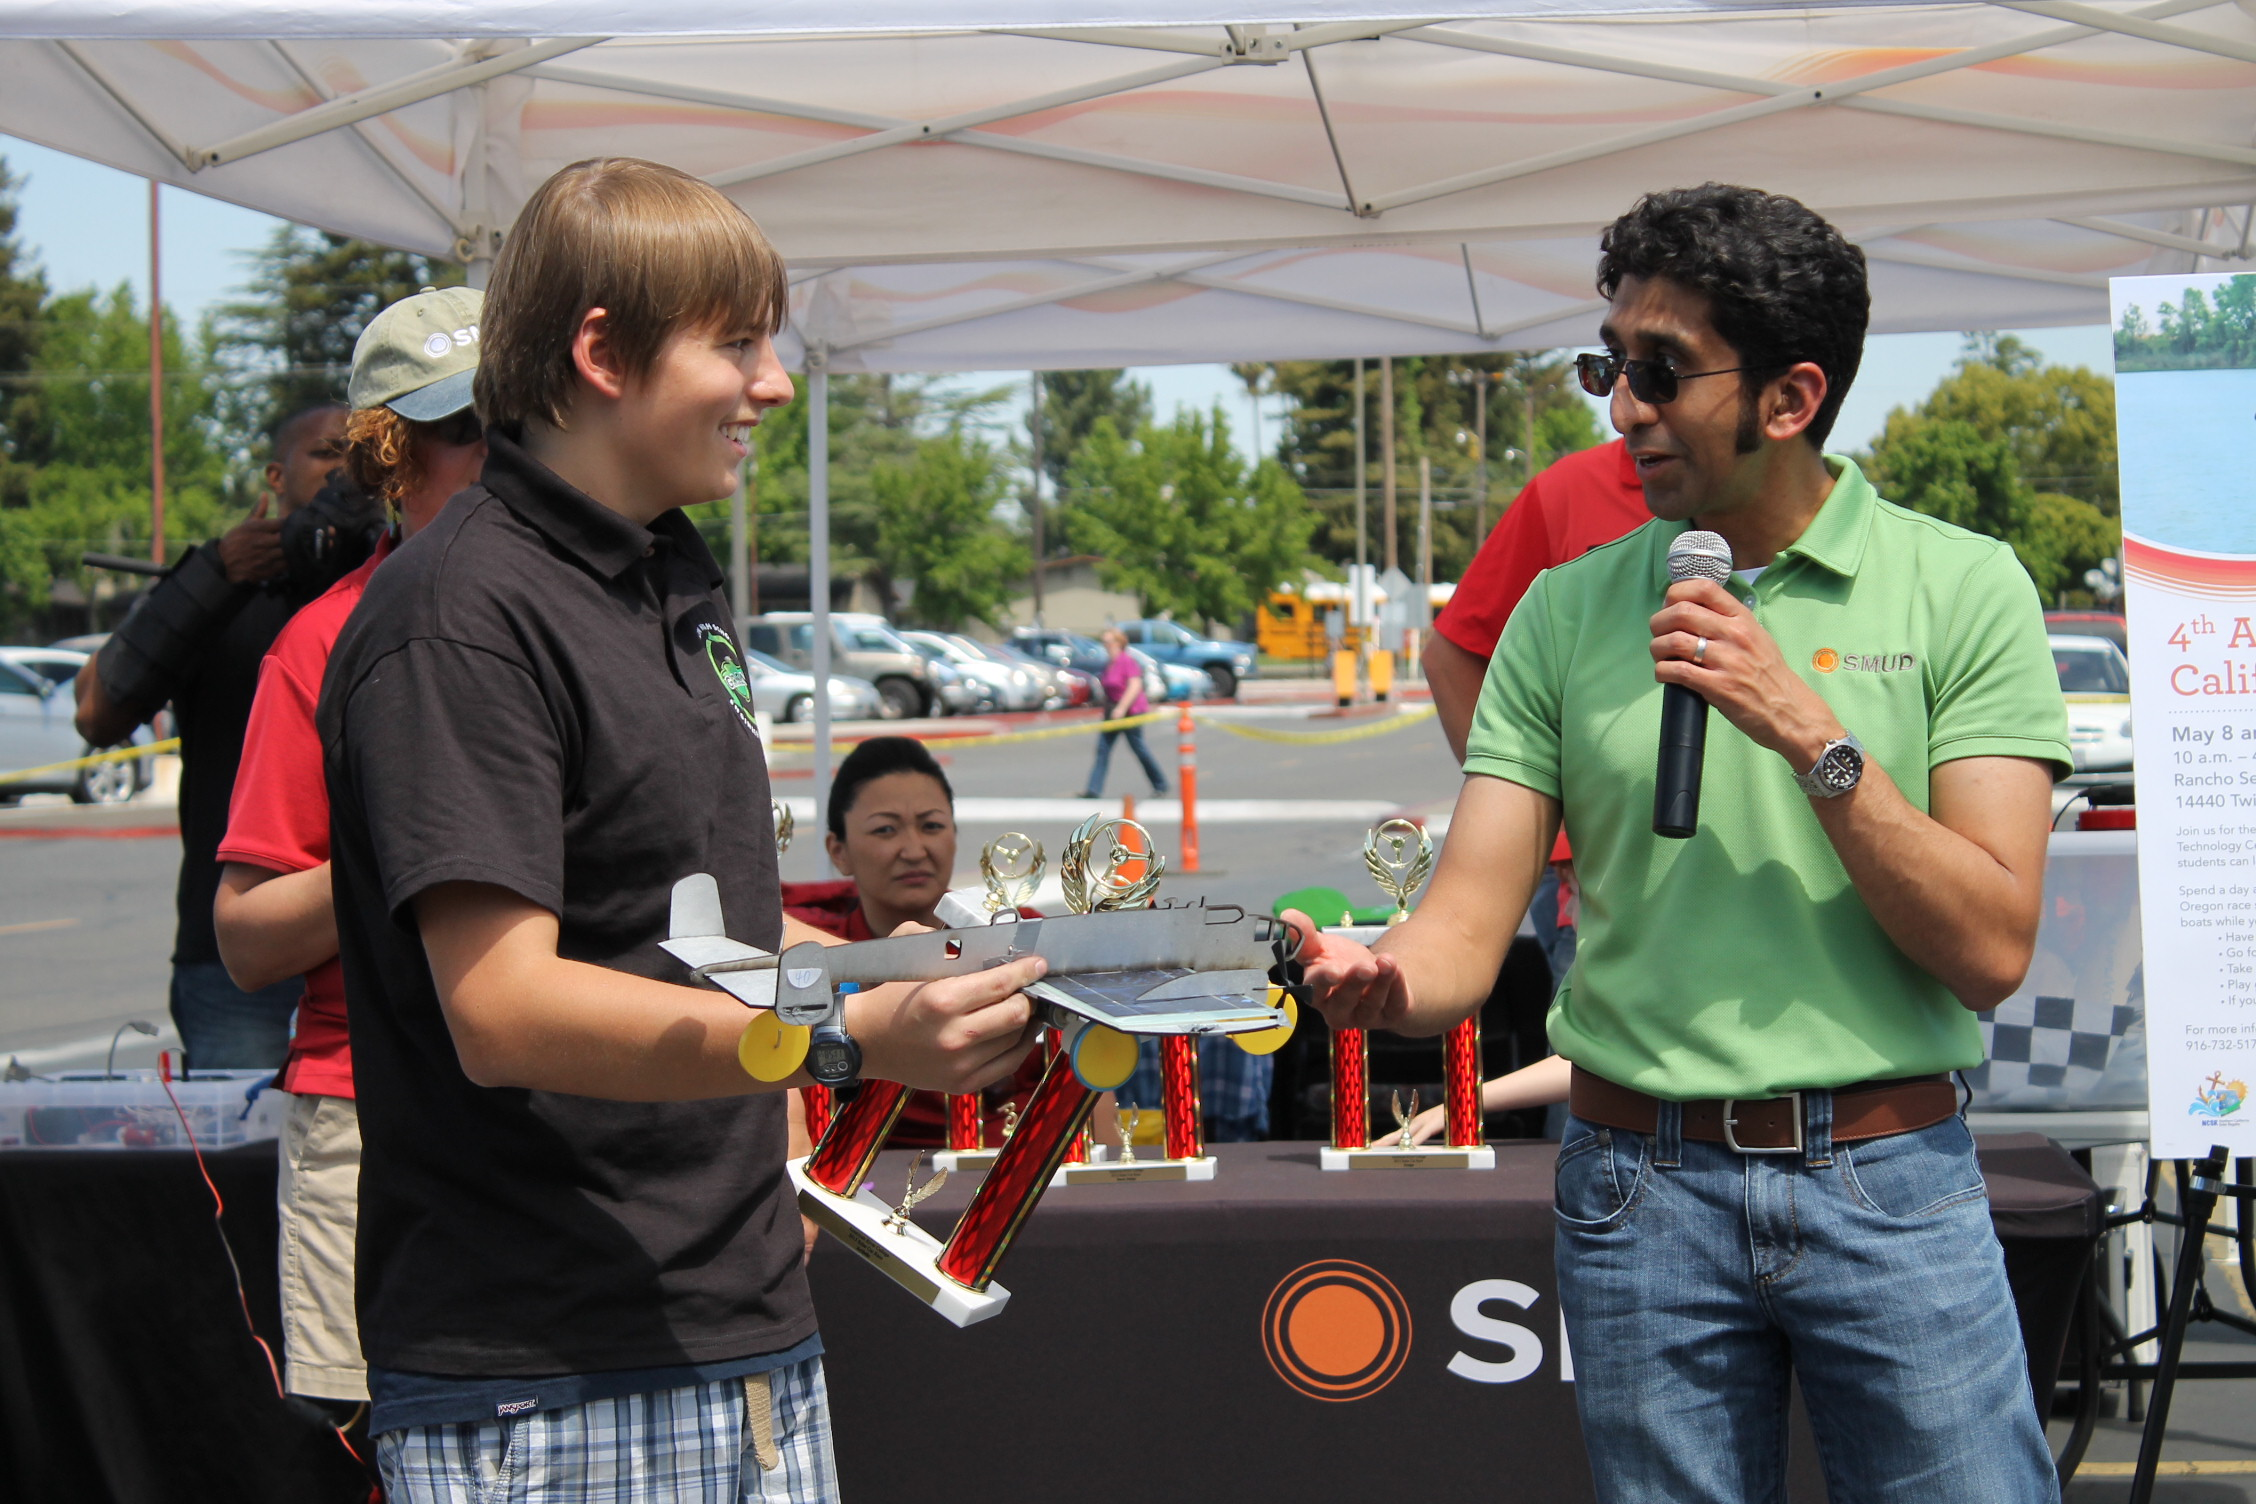 Winner of the Design category receiving his award.